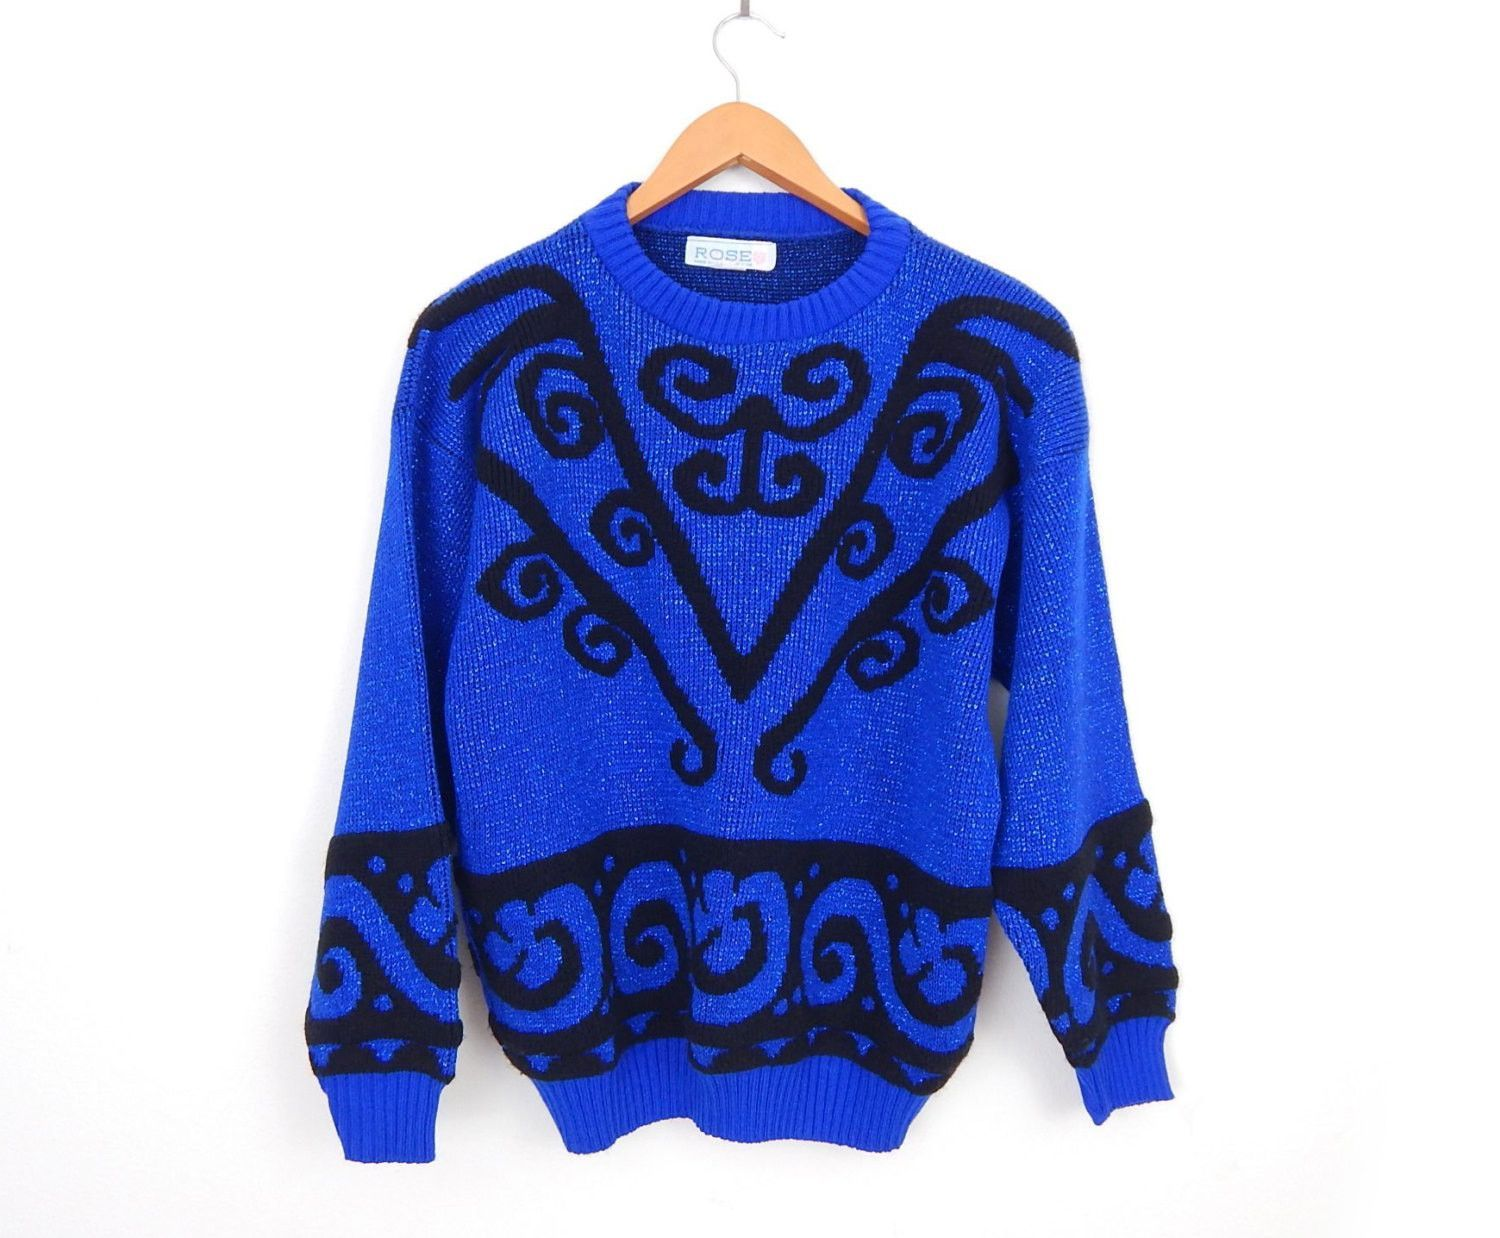 Vintage 80s Sparkly Oversized Women's Sweater - Medium - Royal ...